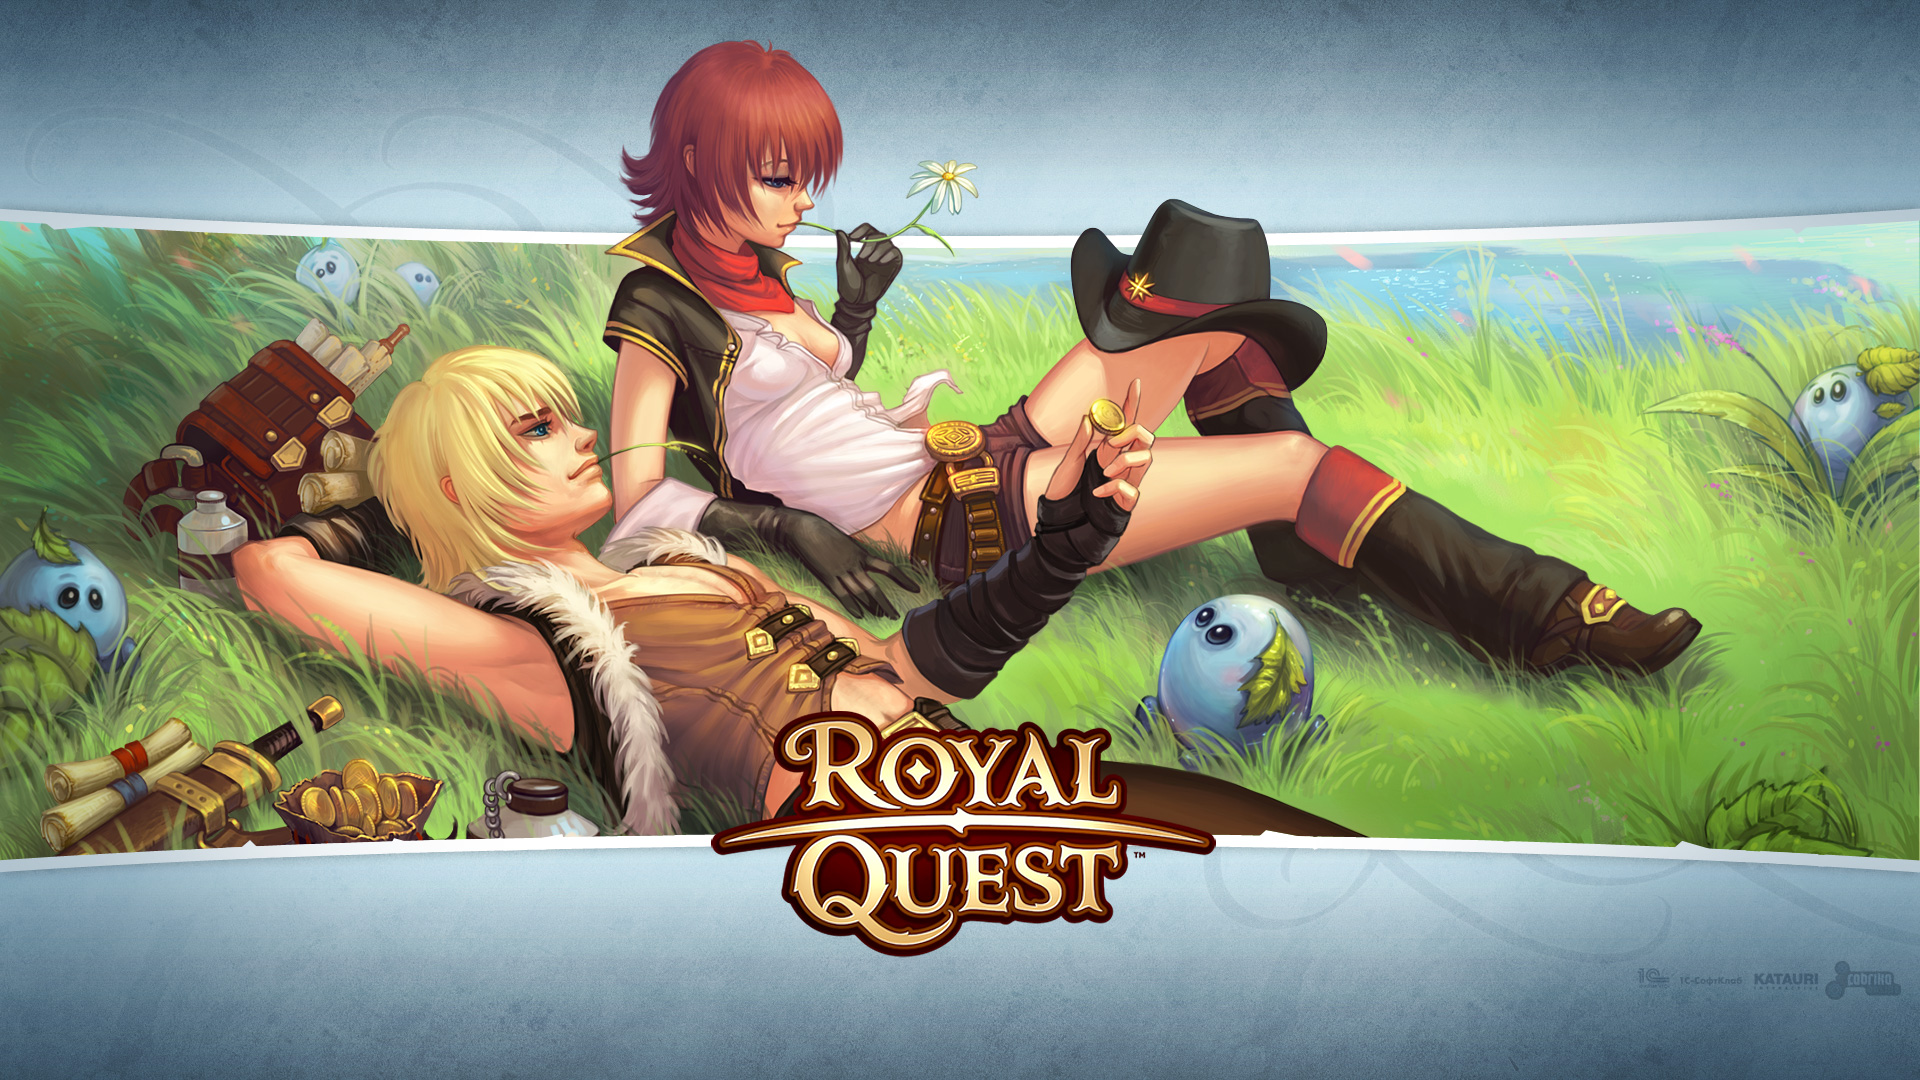 Royal quest xxx pron scene